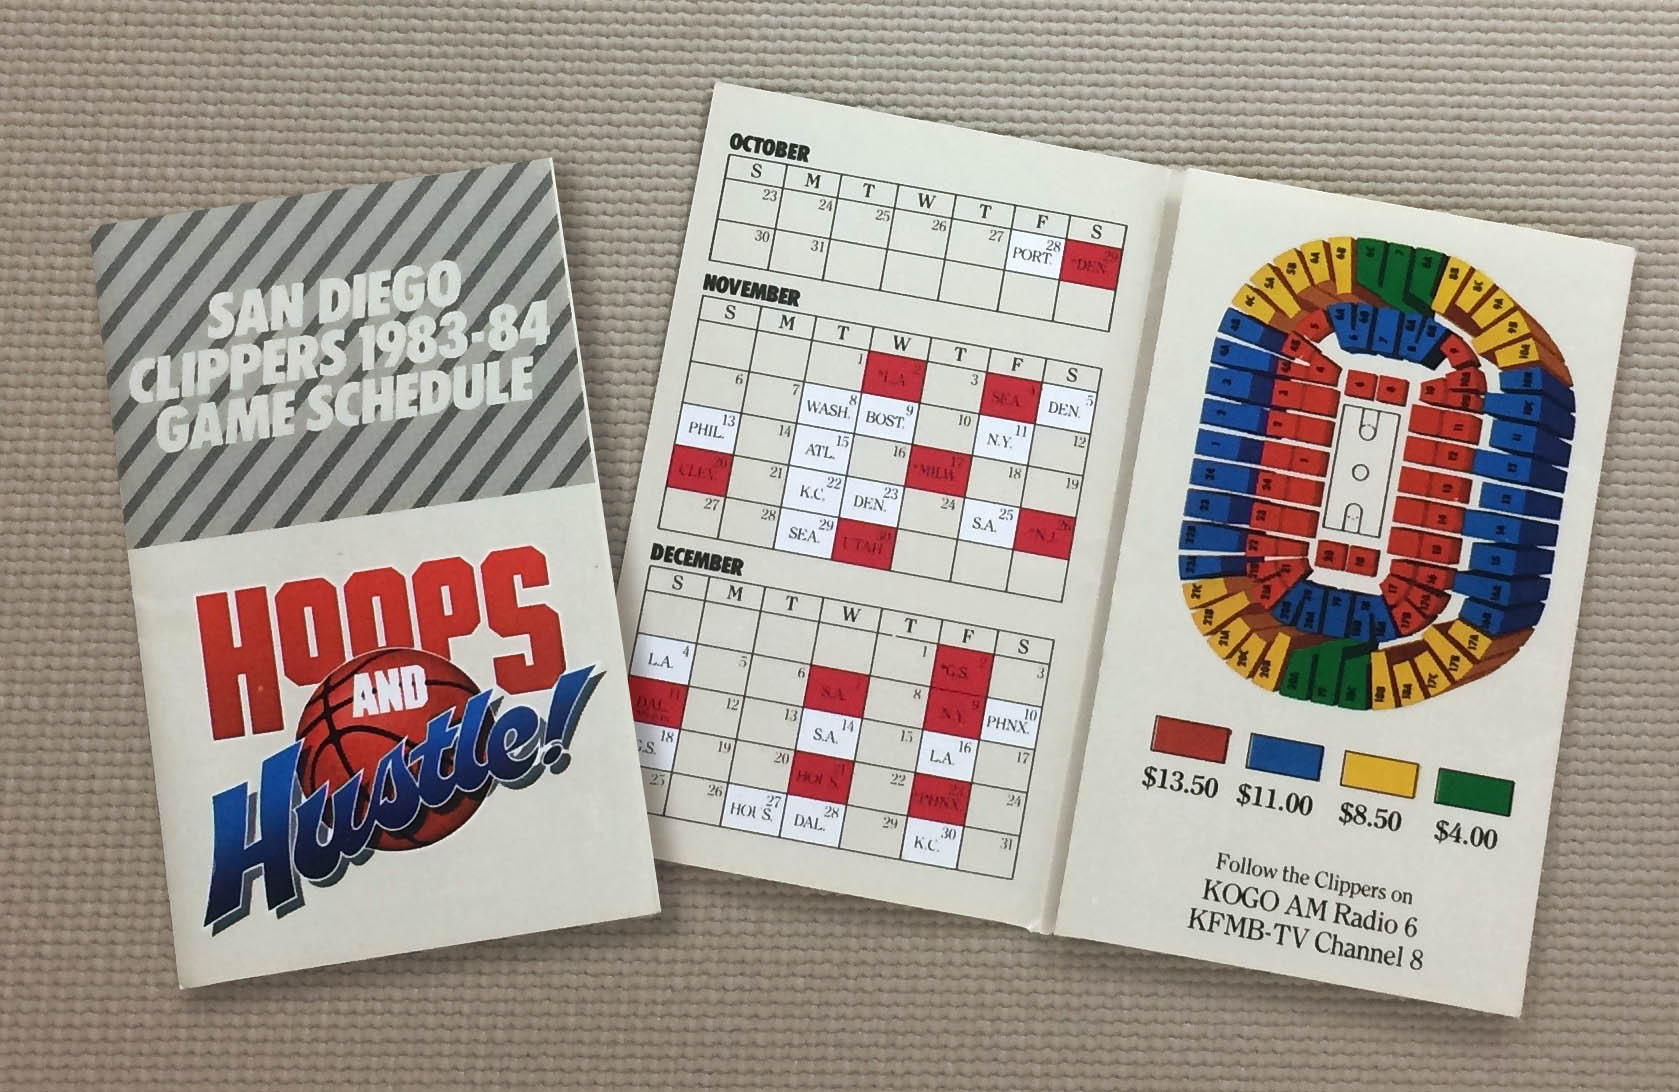 San Diego Clippers 1983-84 Schedule